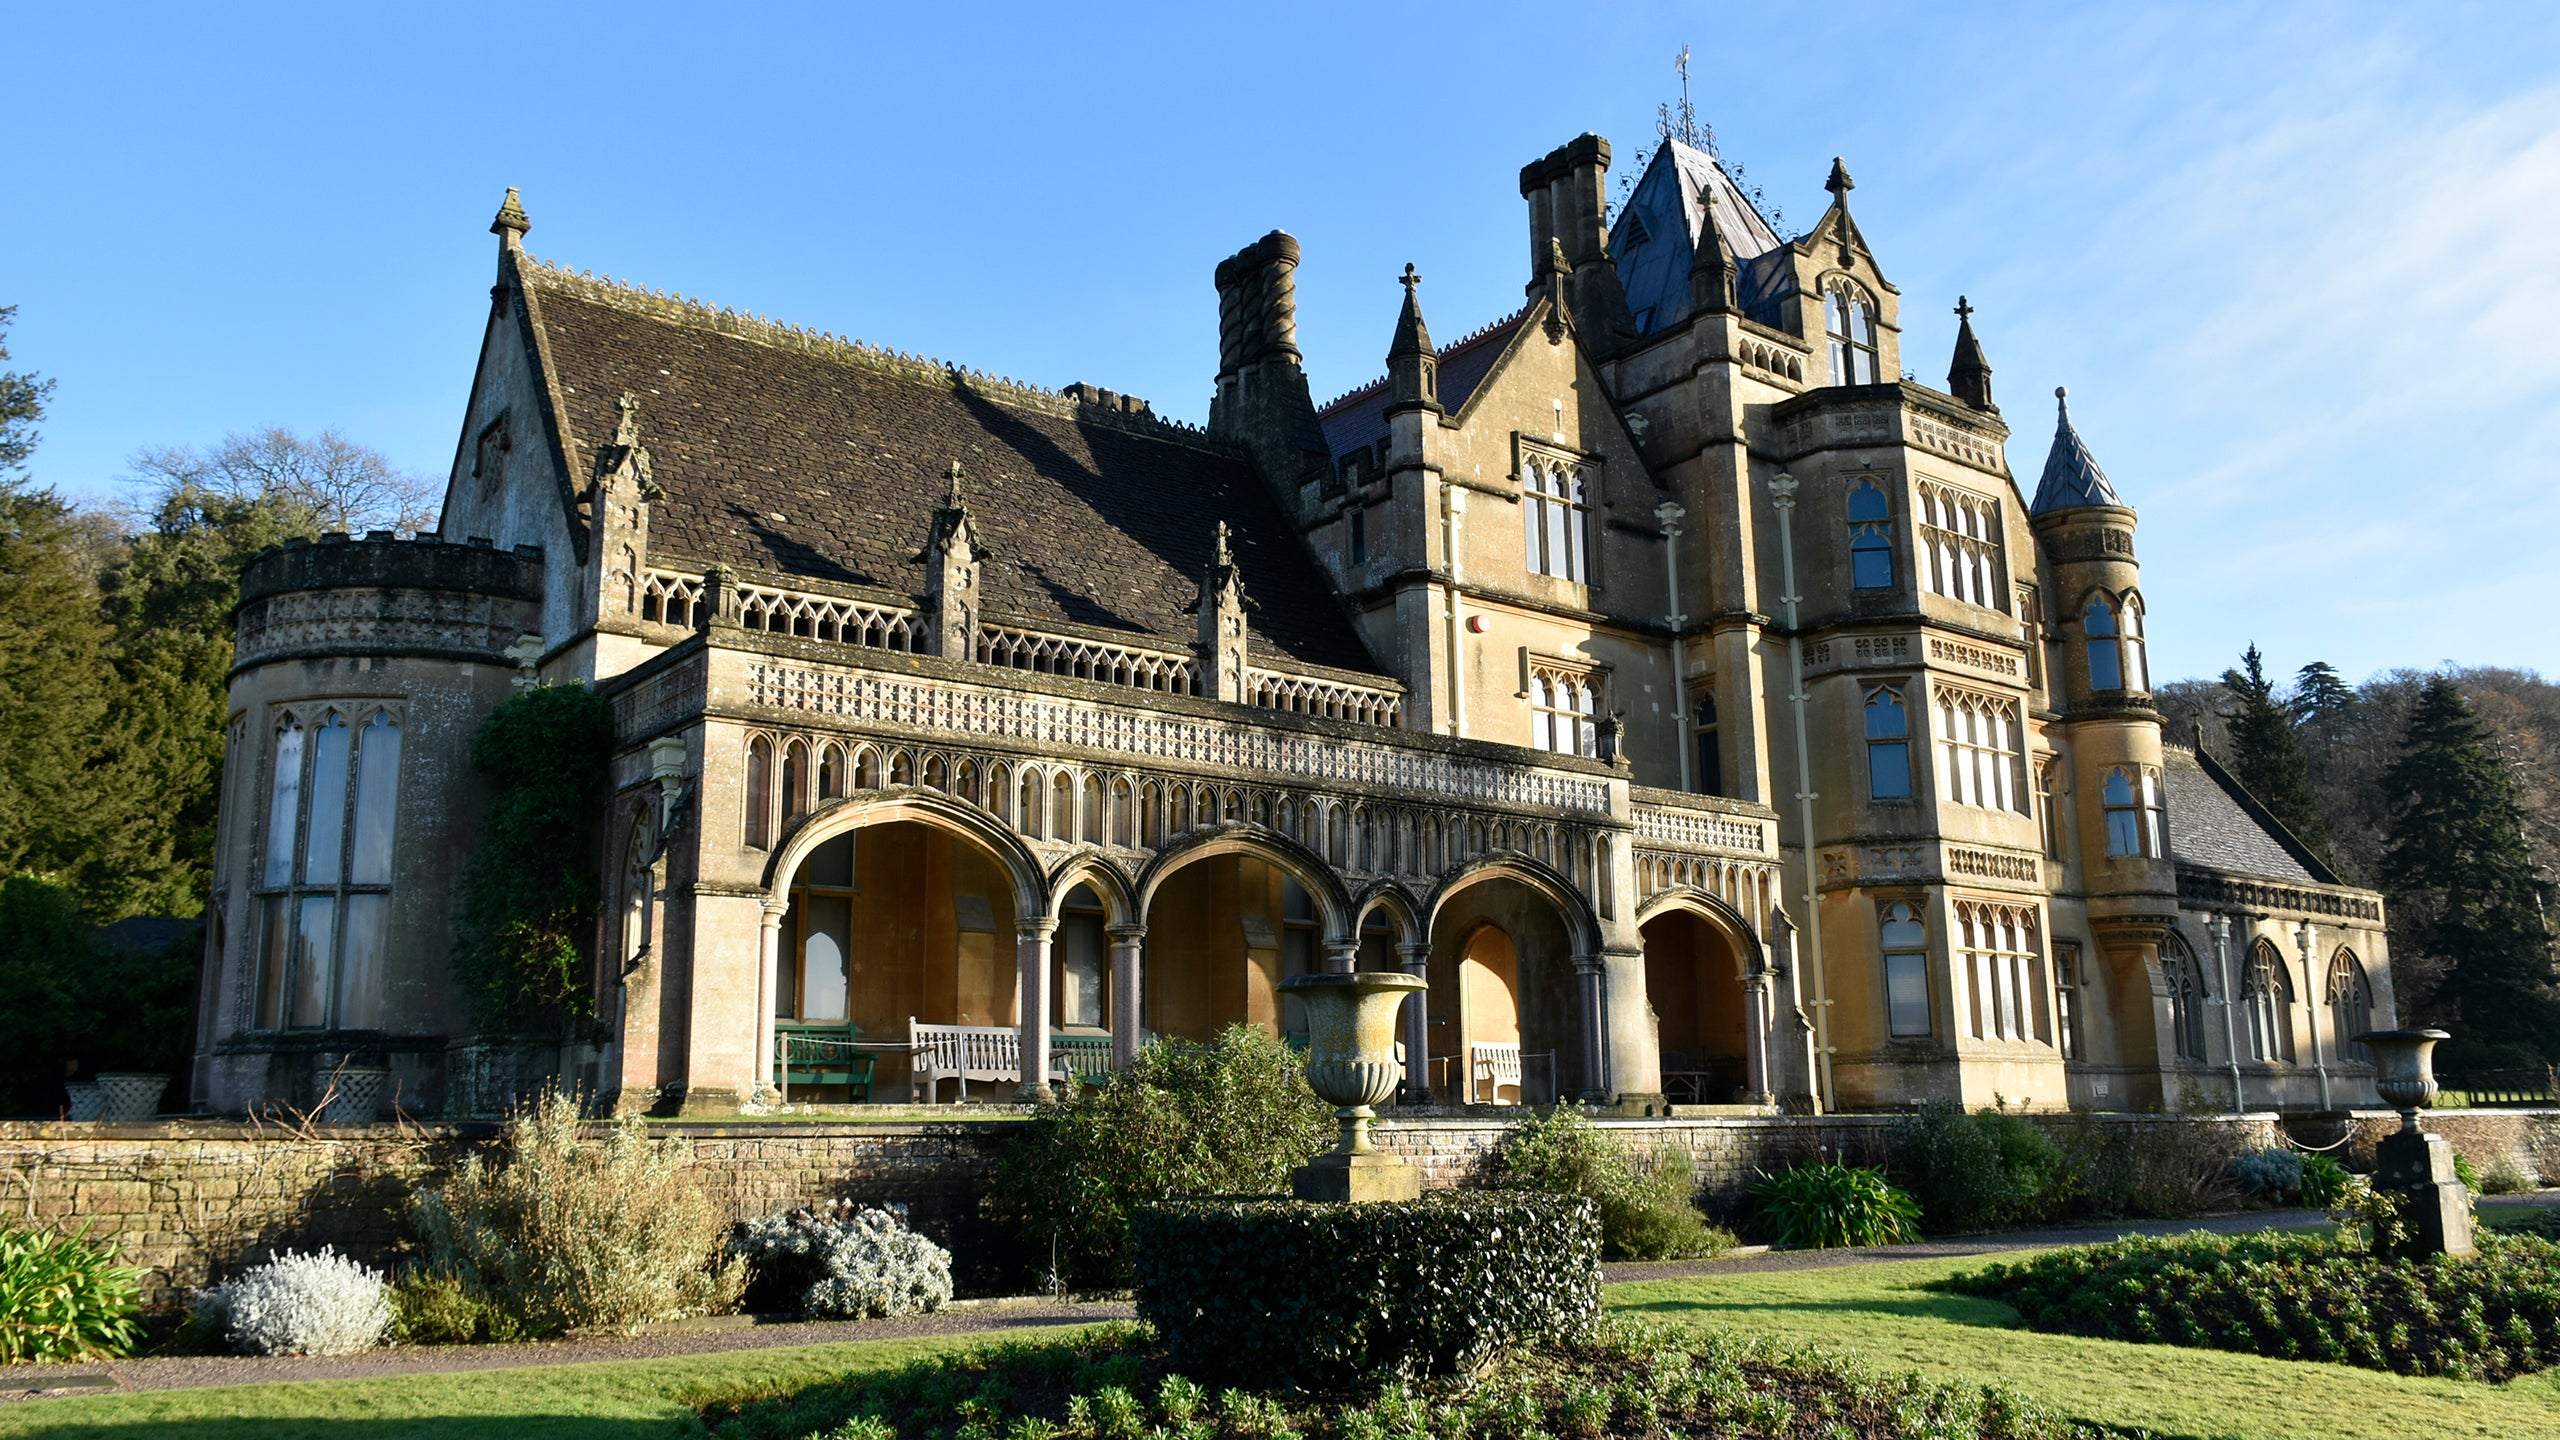 The house at Tyntesfield, Somerset